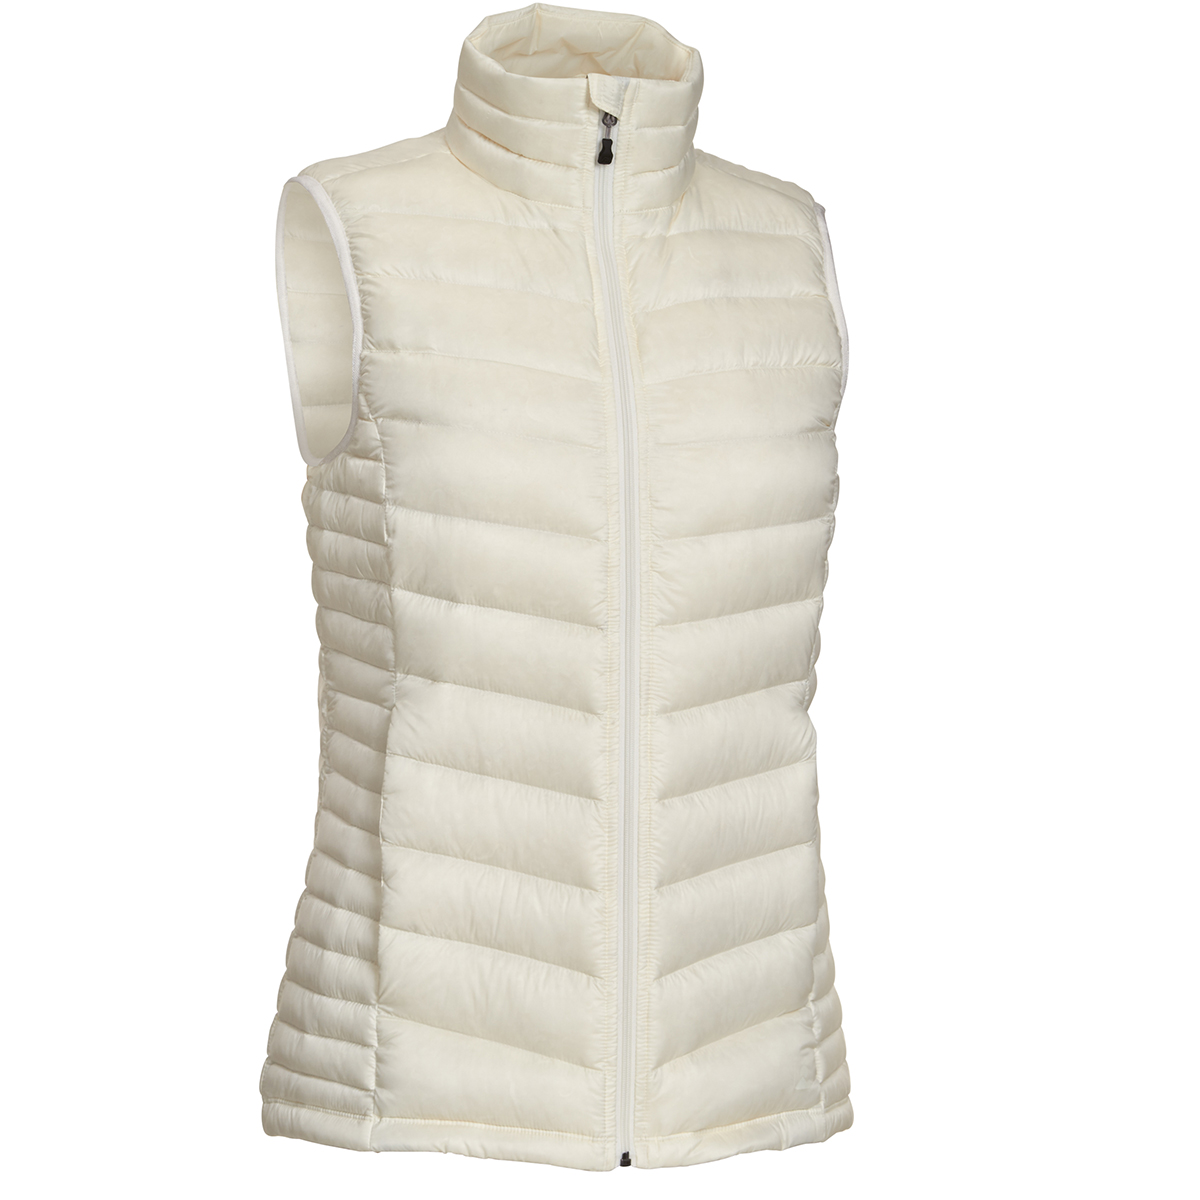 Ems Women's Feather Pack Down Vest - White, XS